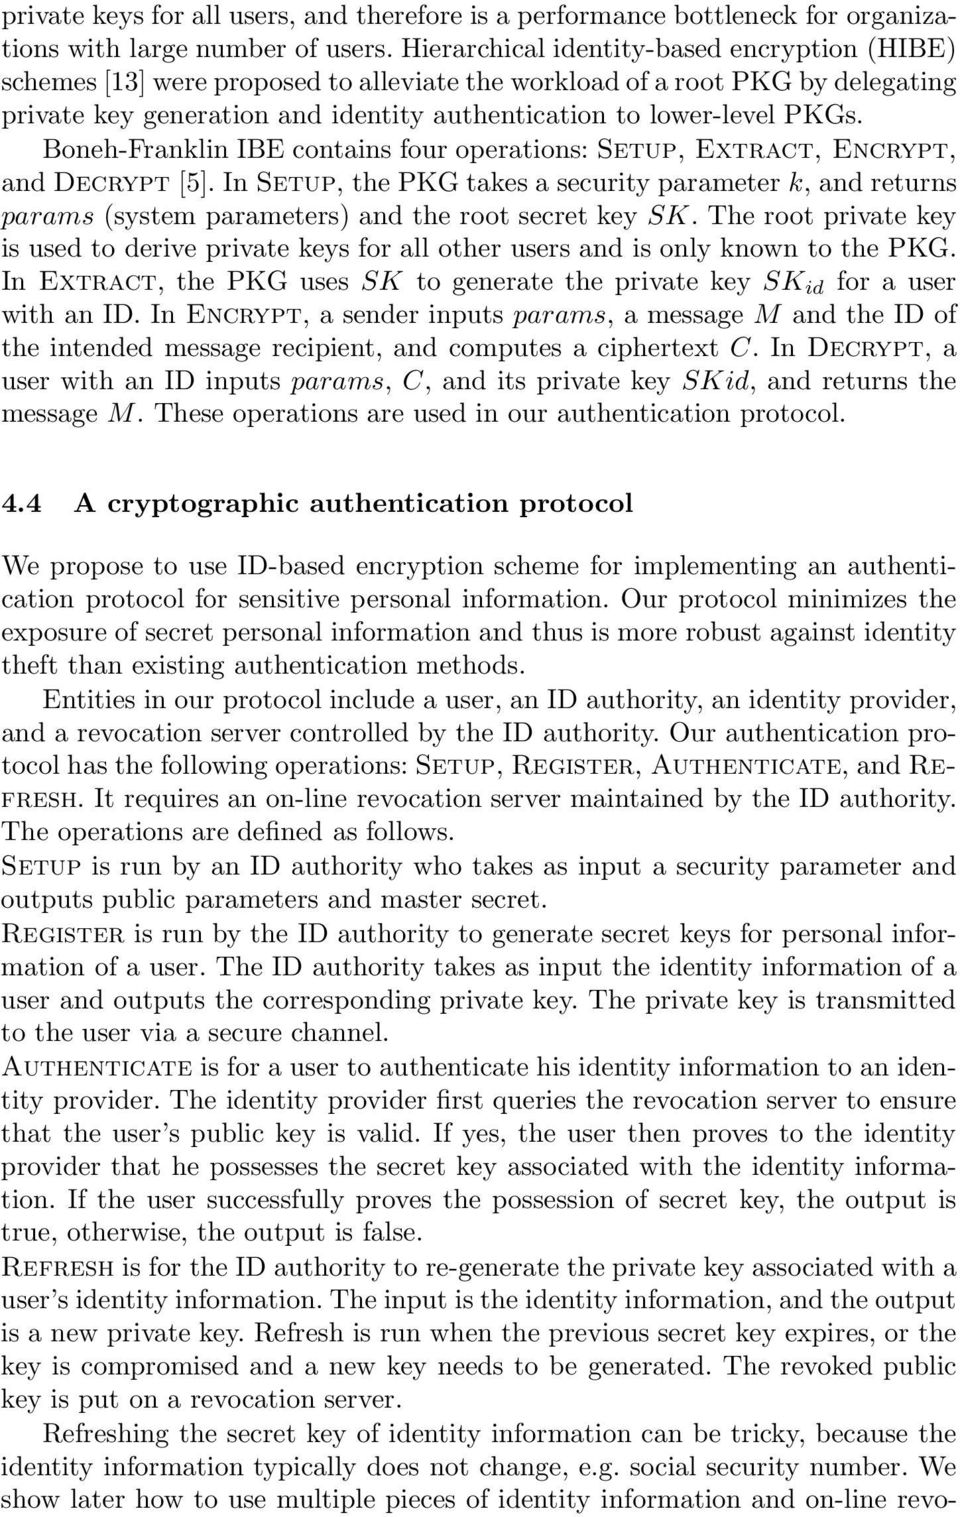 Boneh-Franklin IBE contains four operations: Setup, Extract, Encrypt, and Decrypt [5].